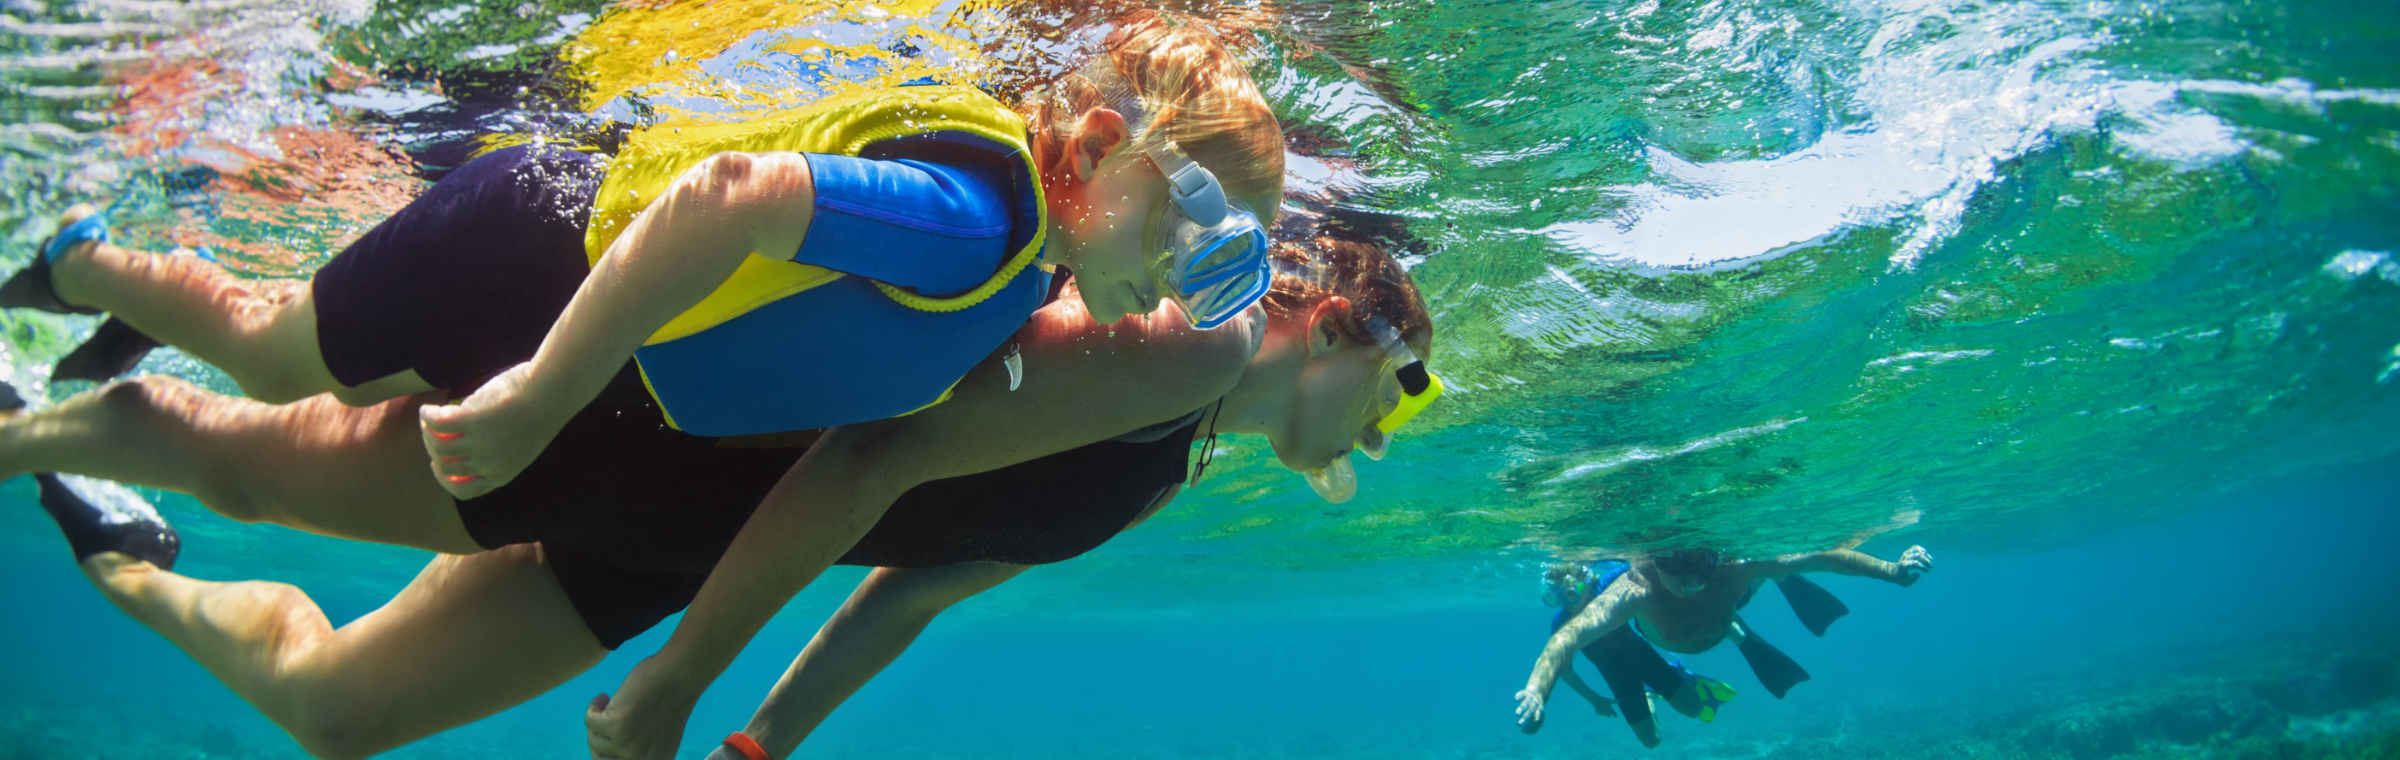 snorkling in the Bahamas